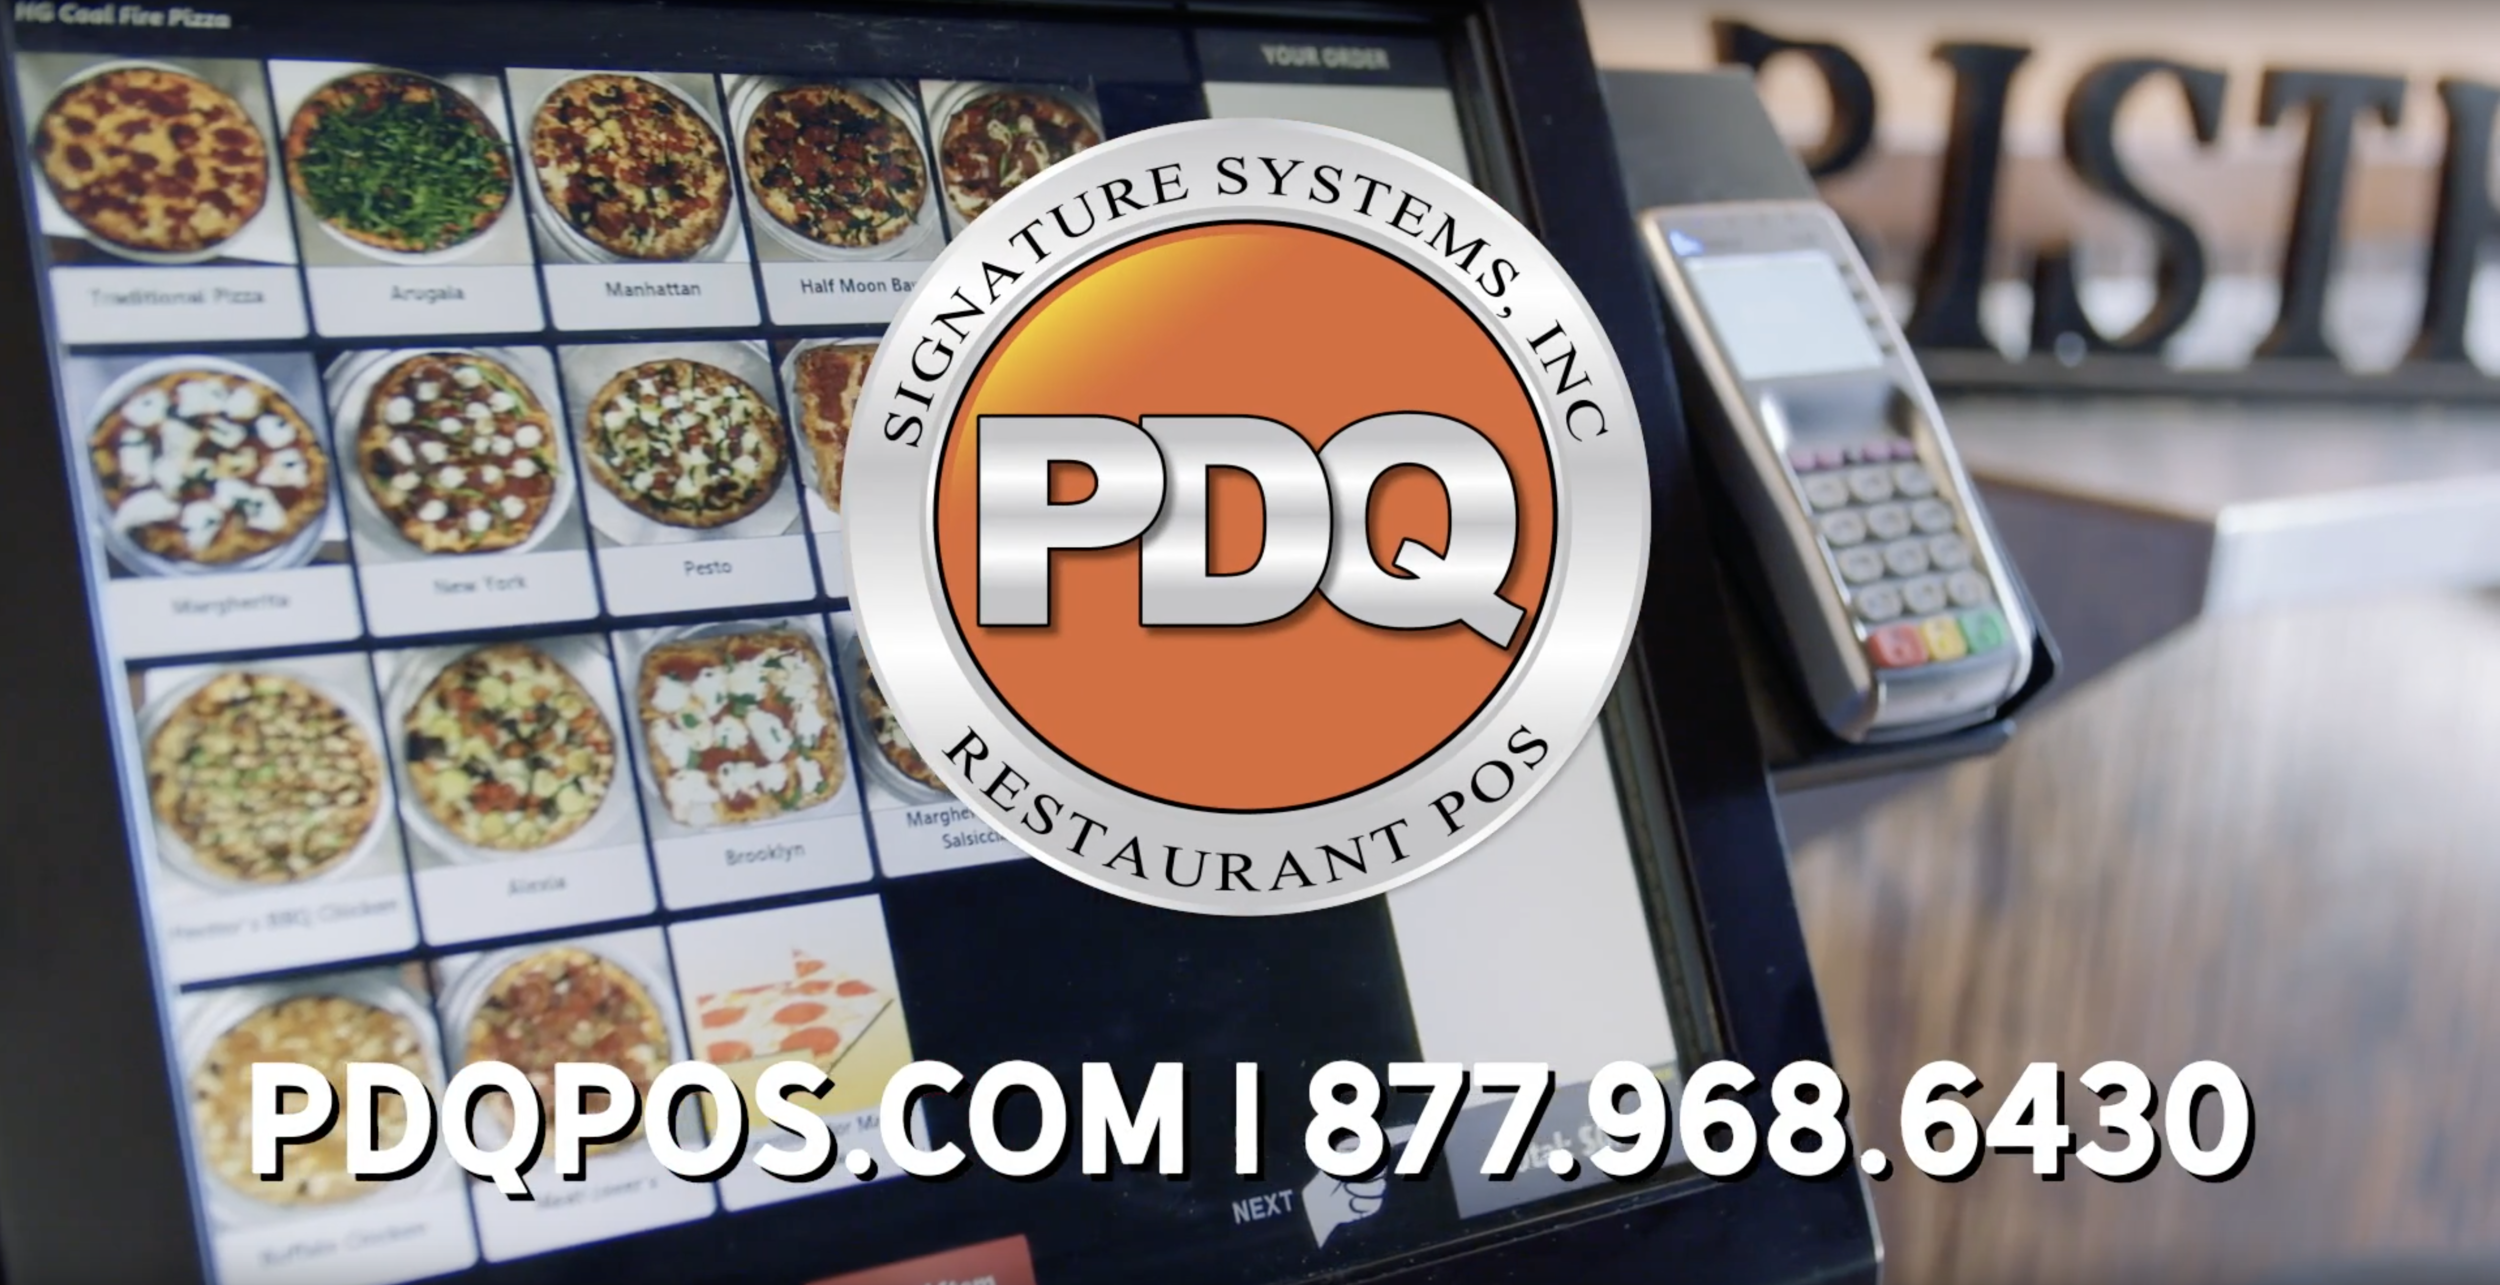 PDQ Signature Systems